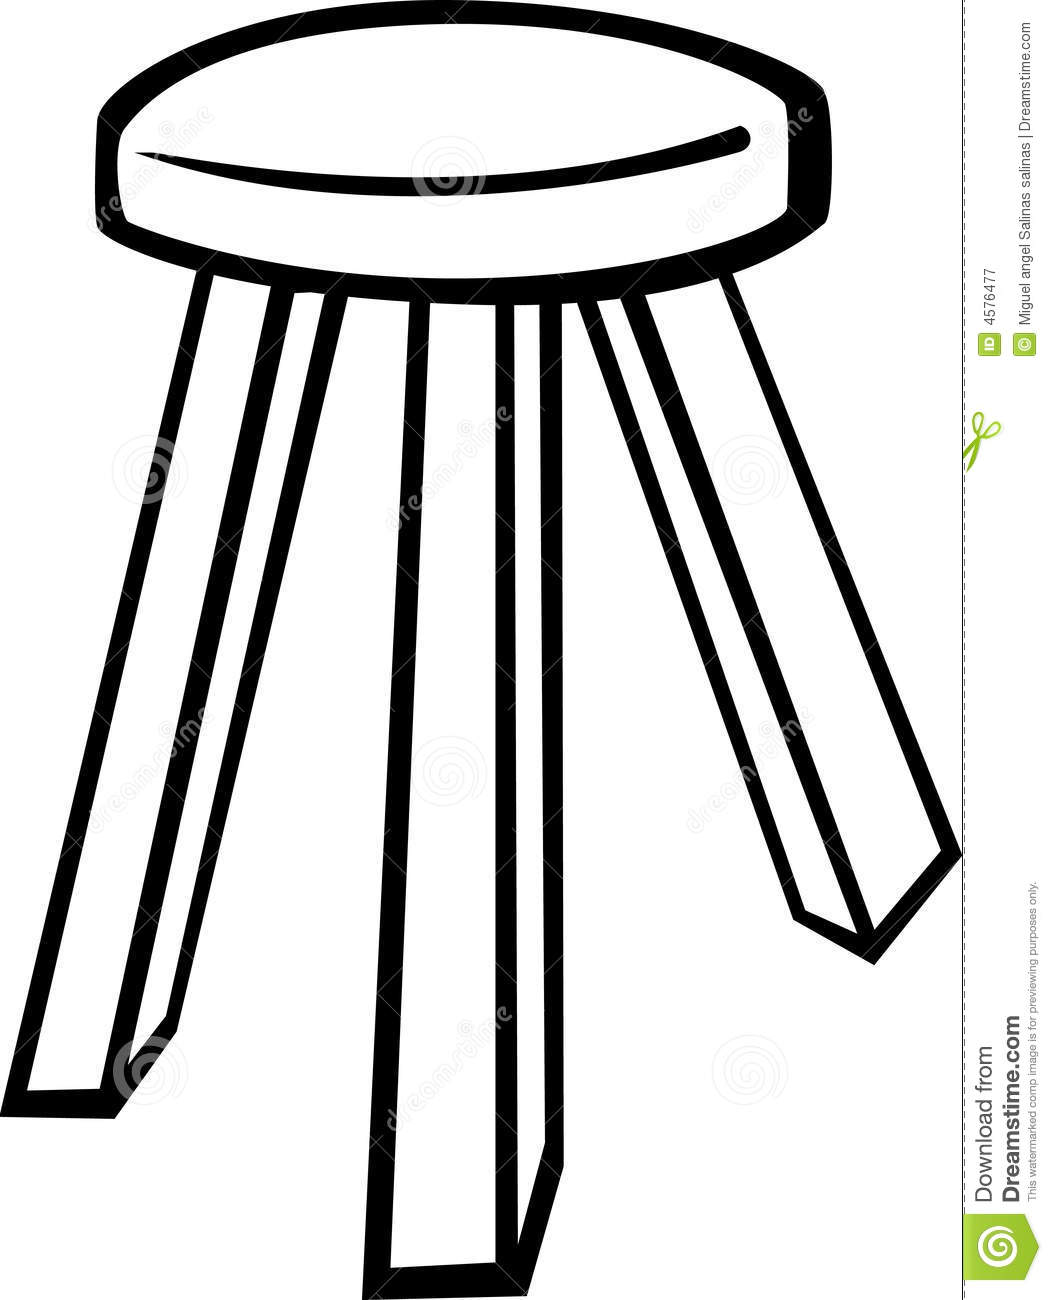 Wooden Stool Vector Illustration Stock Vector